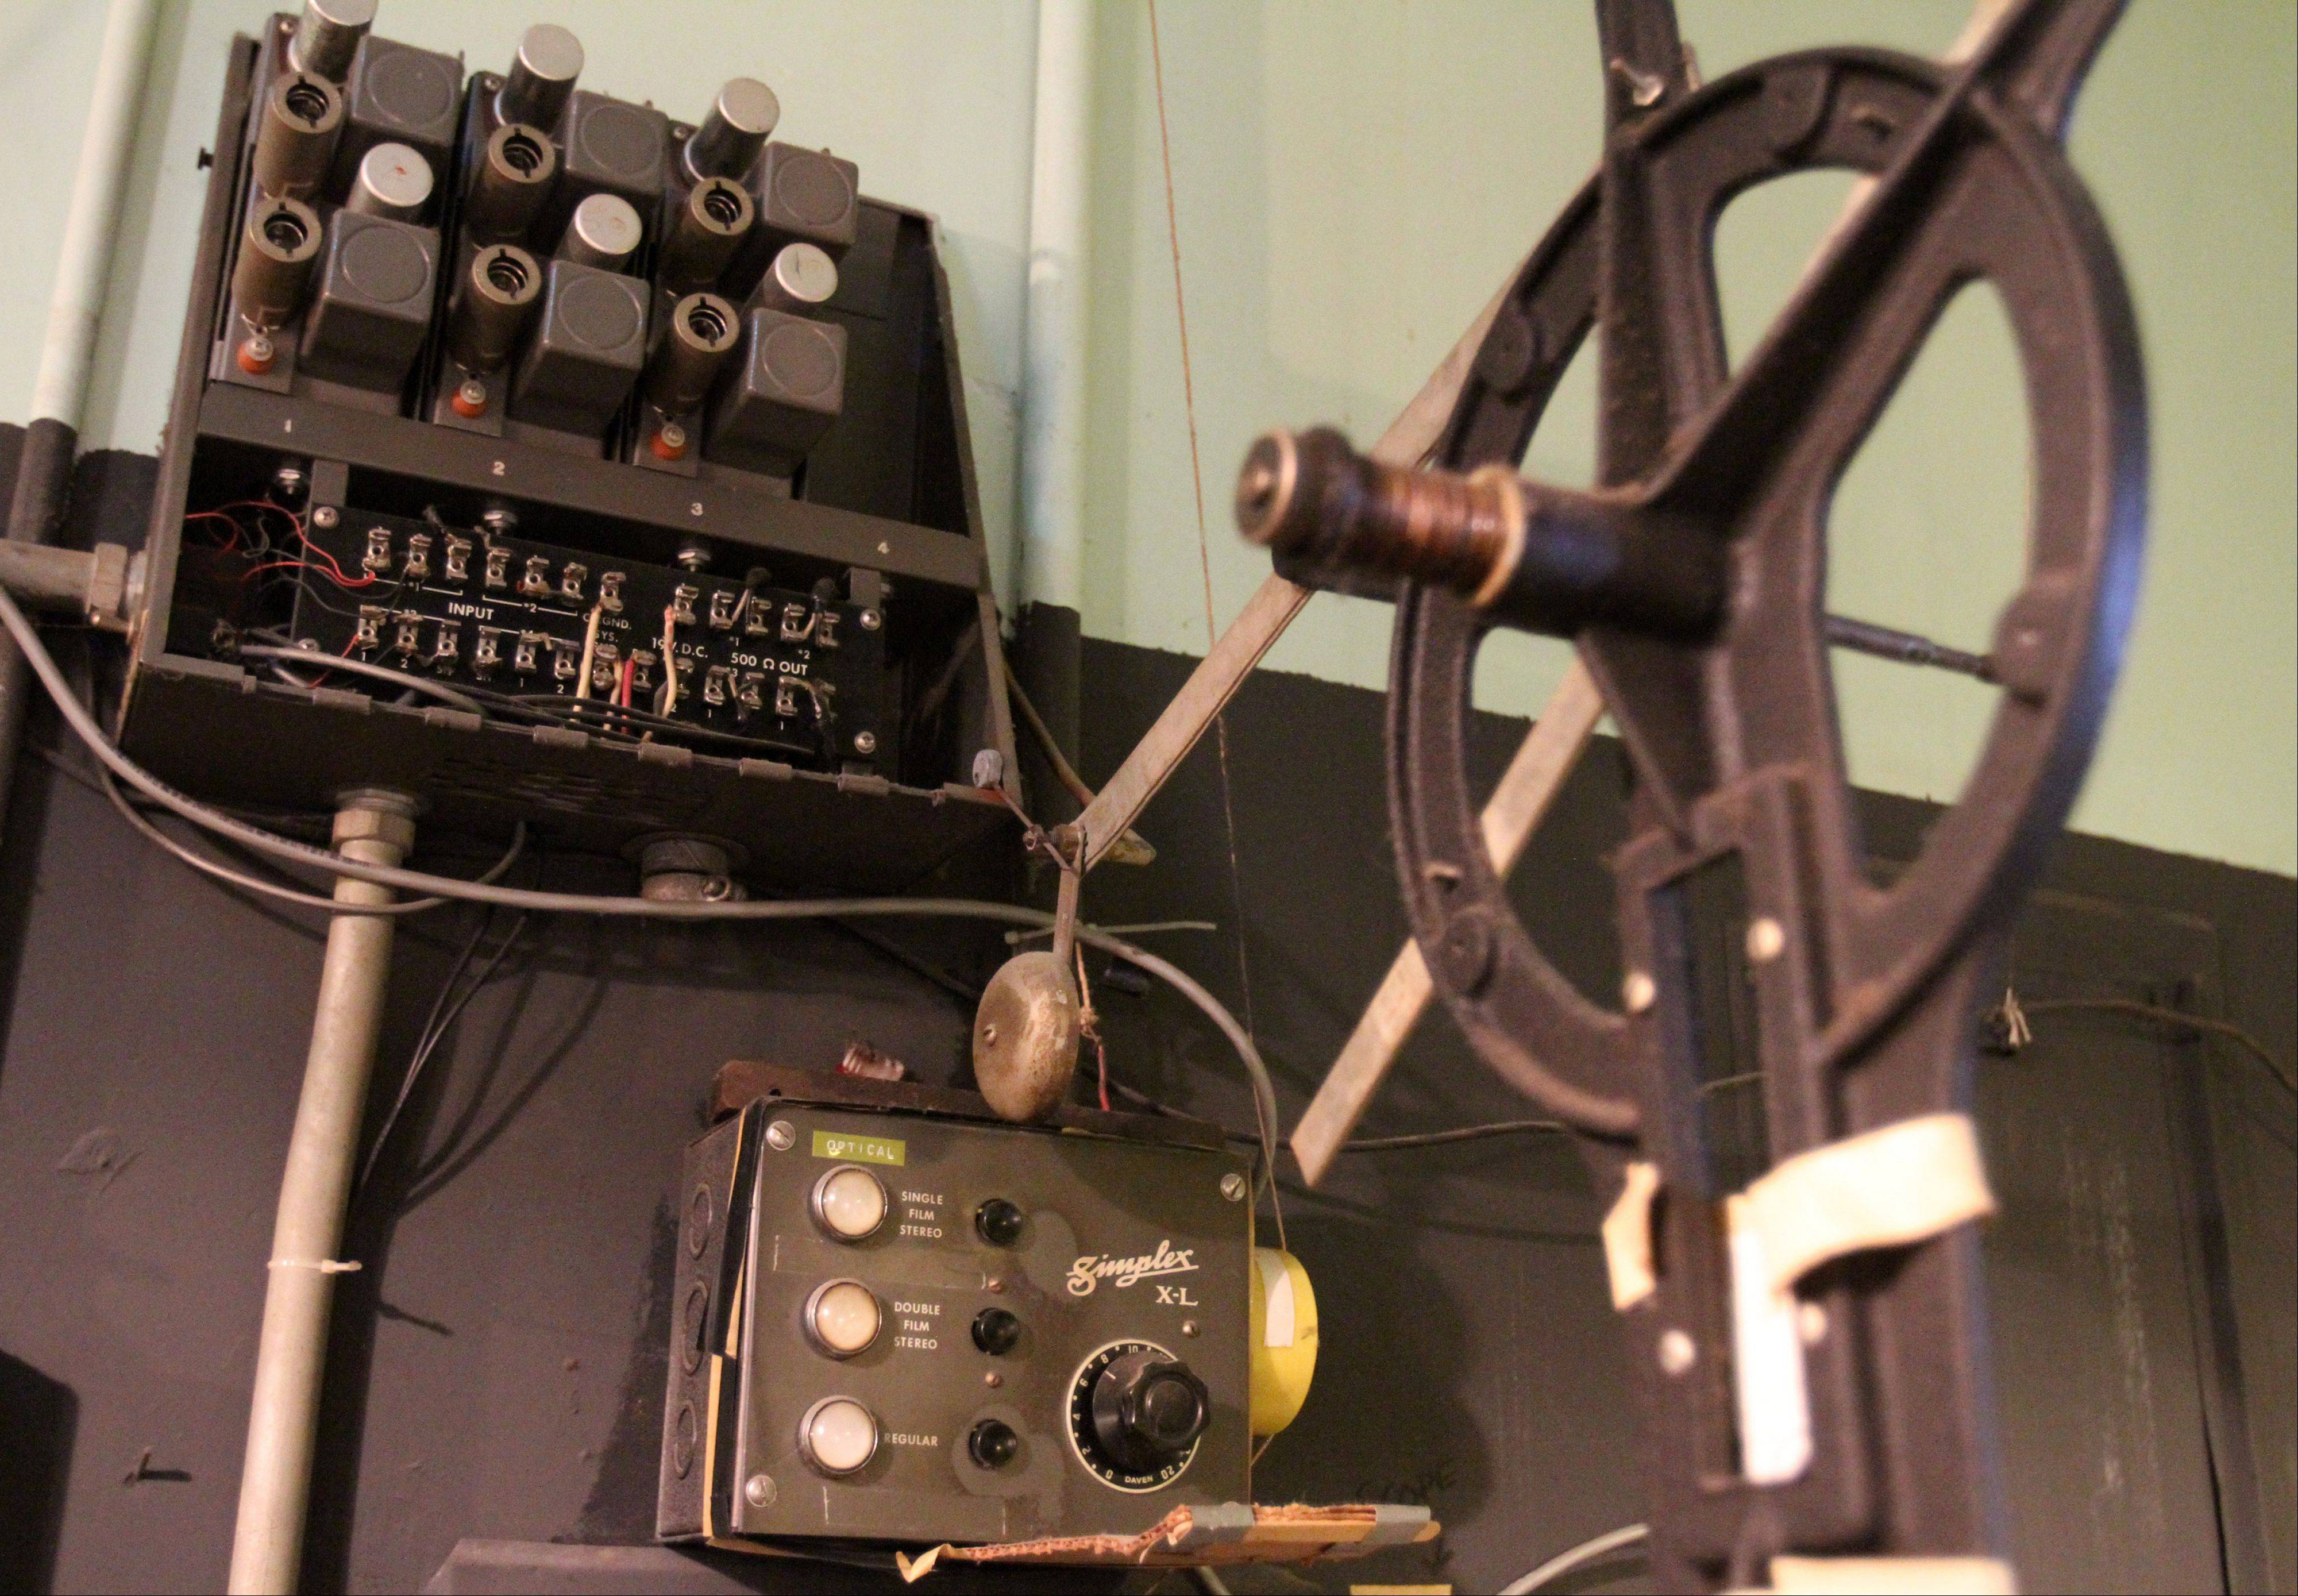 The Catlow theater's film projection room has reels and controls for the 10940-50s Simplex XL film projector on the wall that is currently being used at the theater in Barrington.